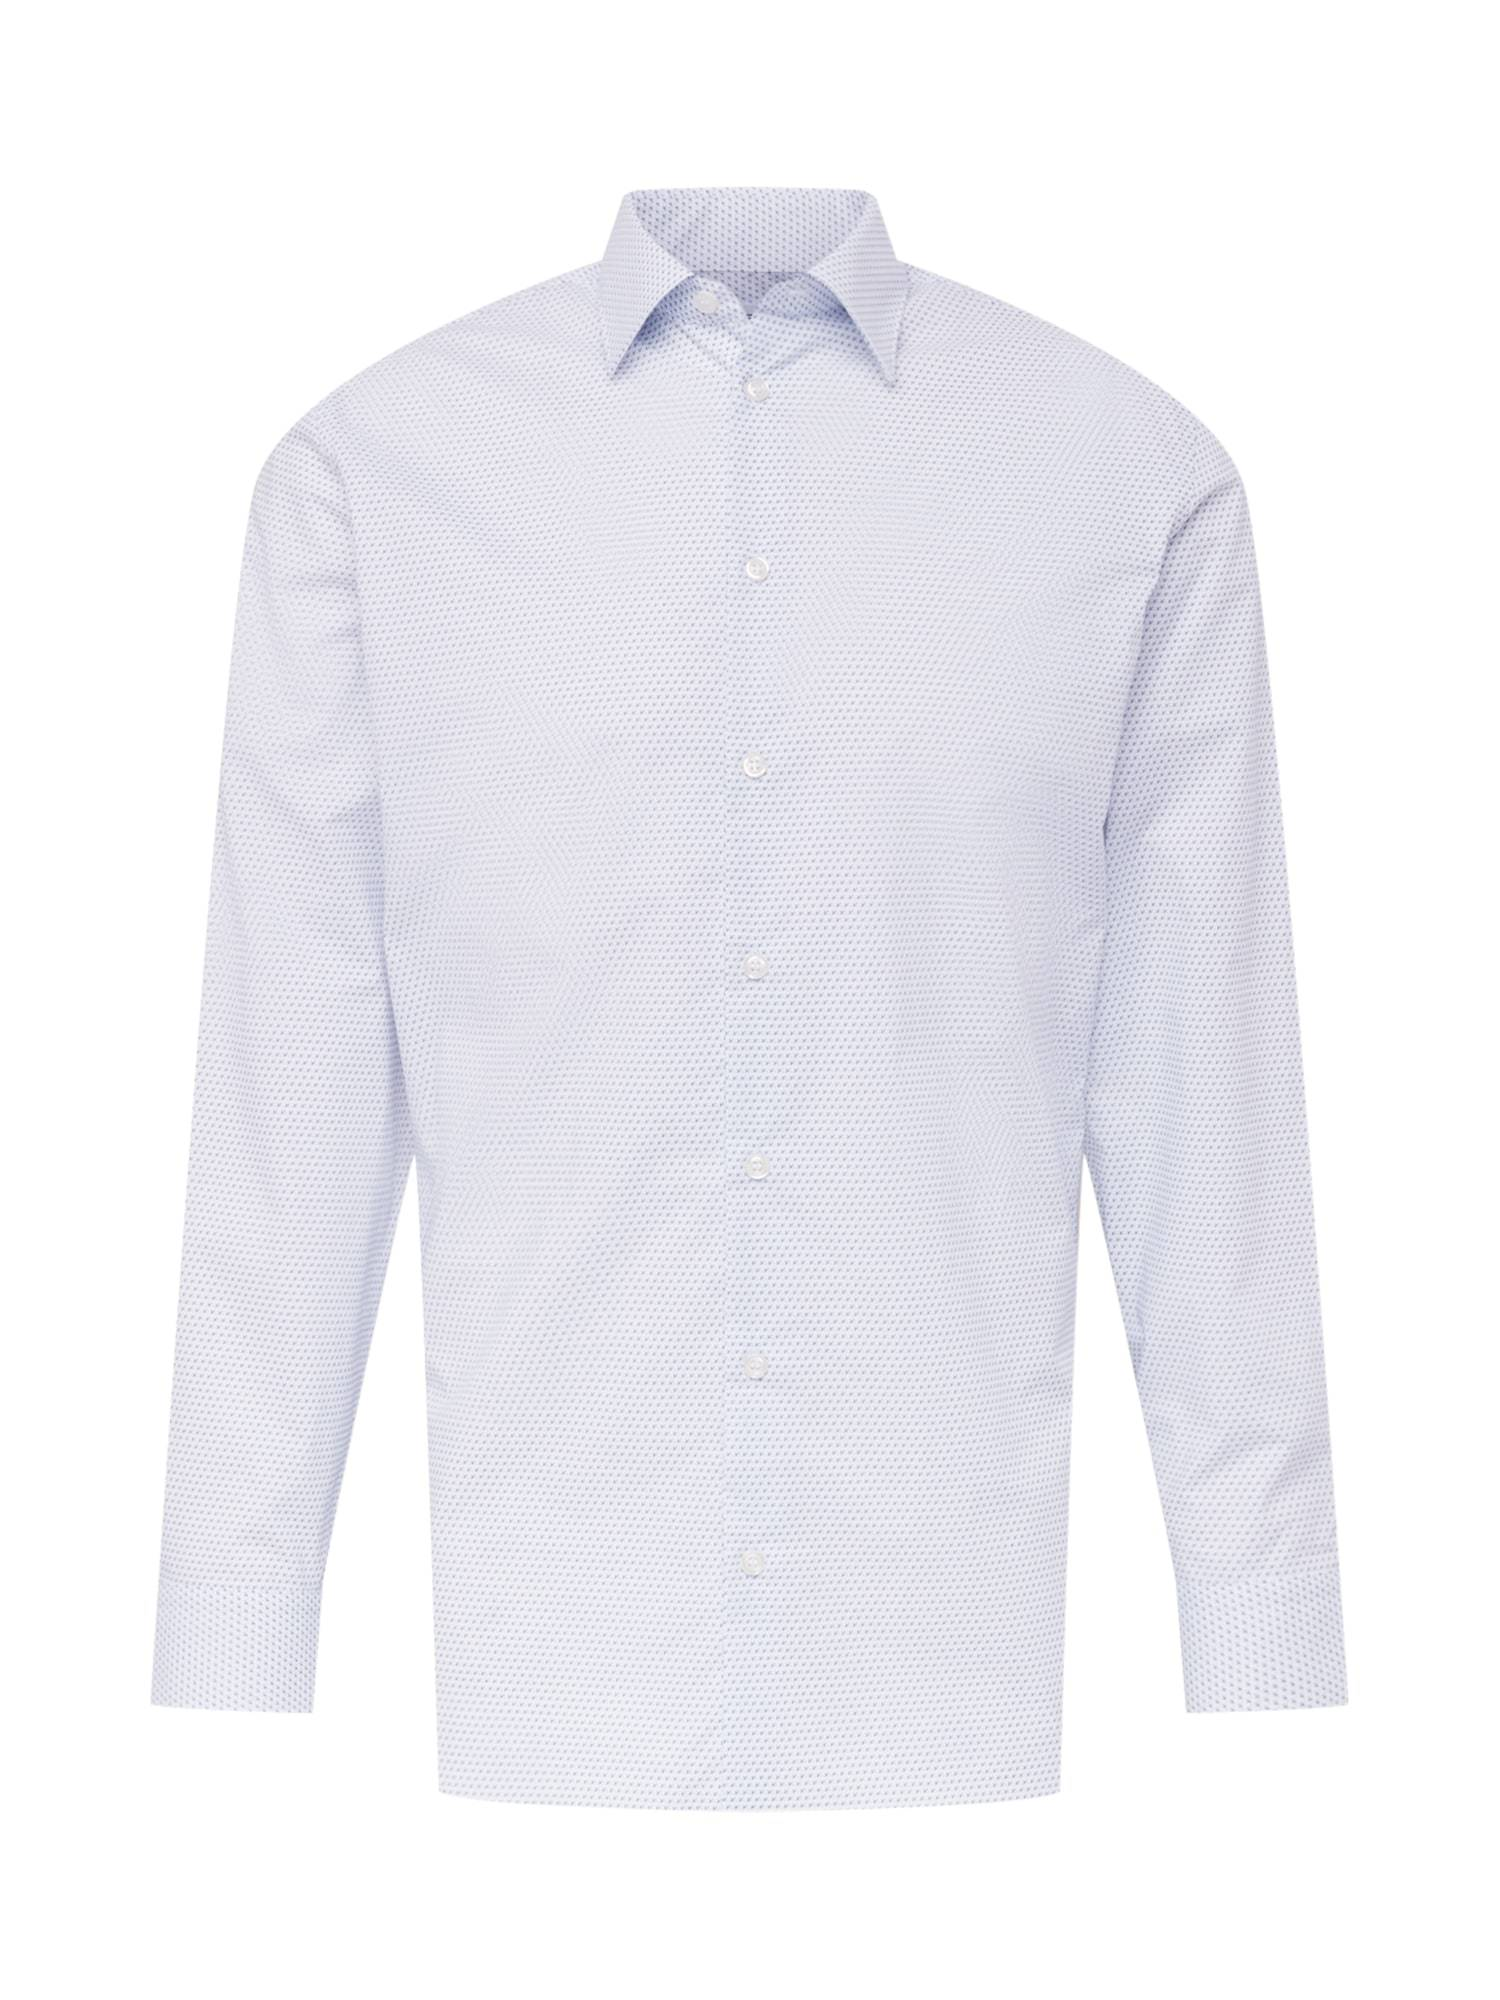 SELECTED HOMME Chemise  - Blanc - Taille: S - male